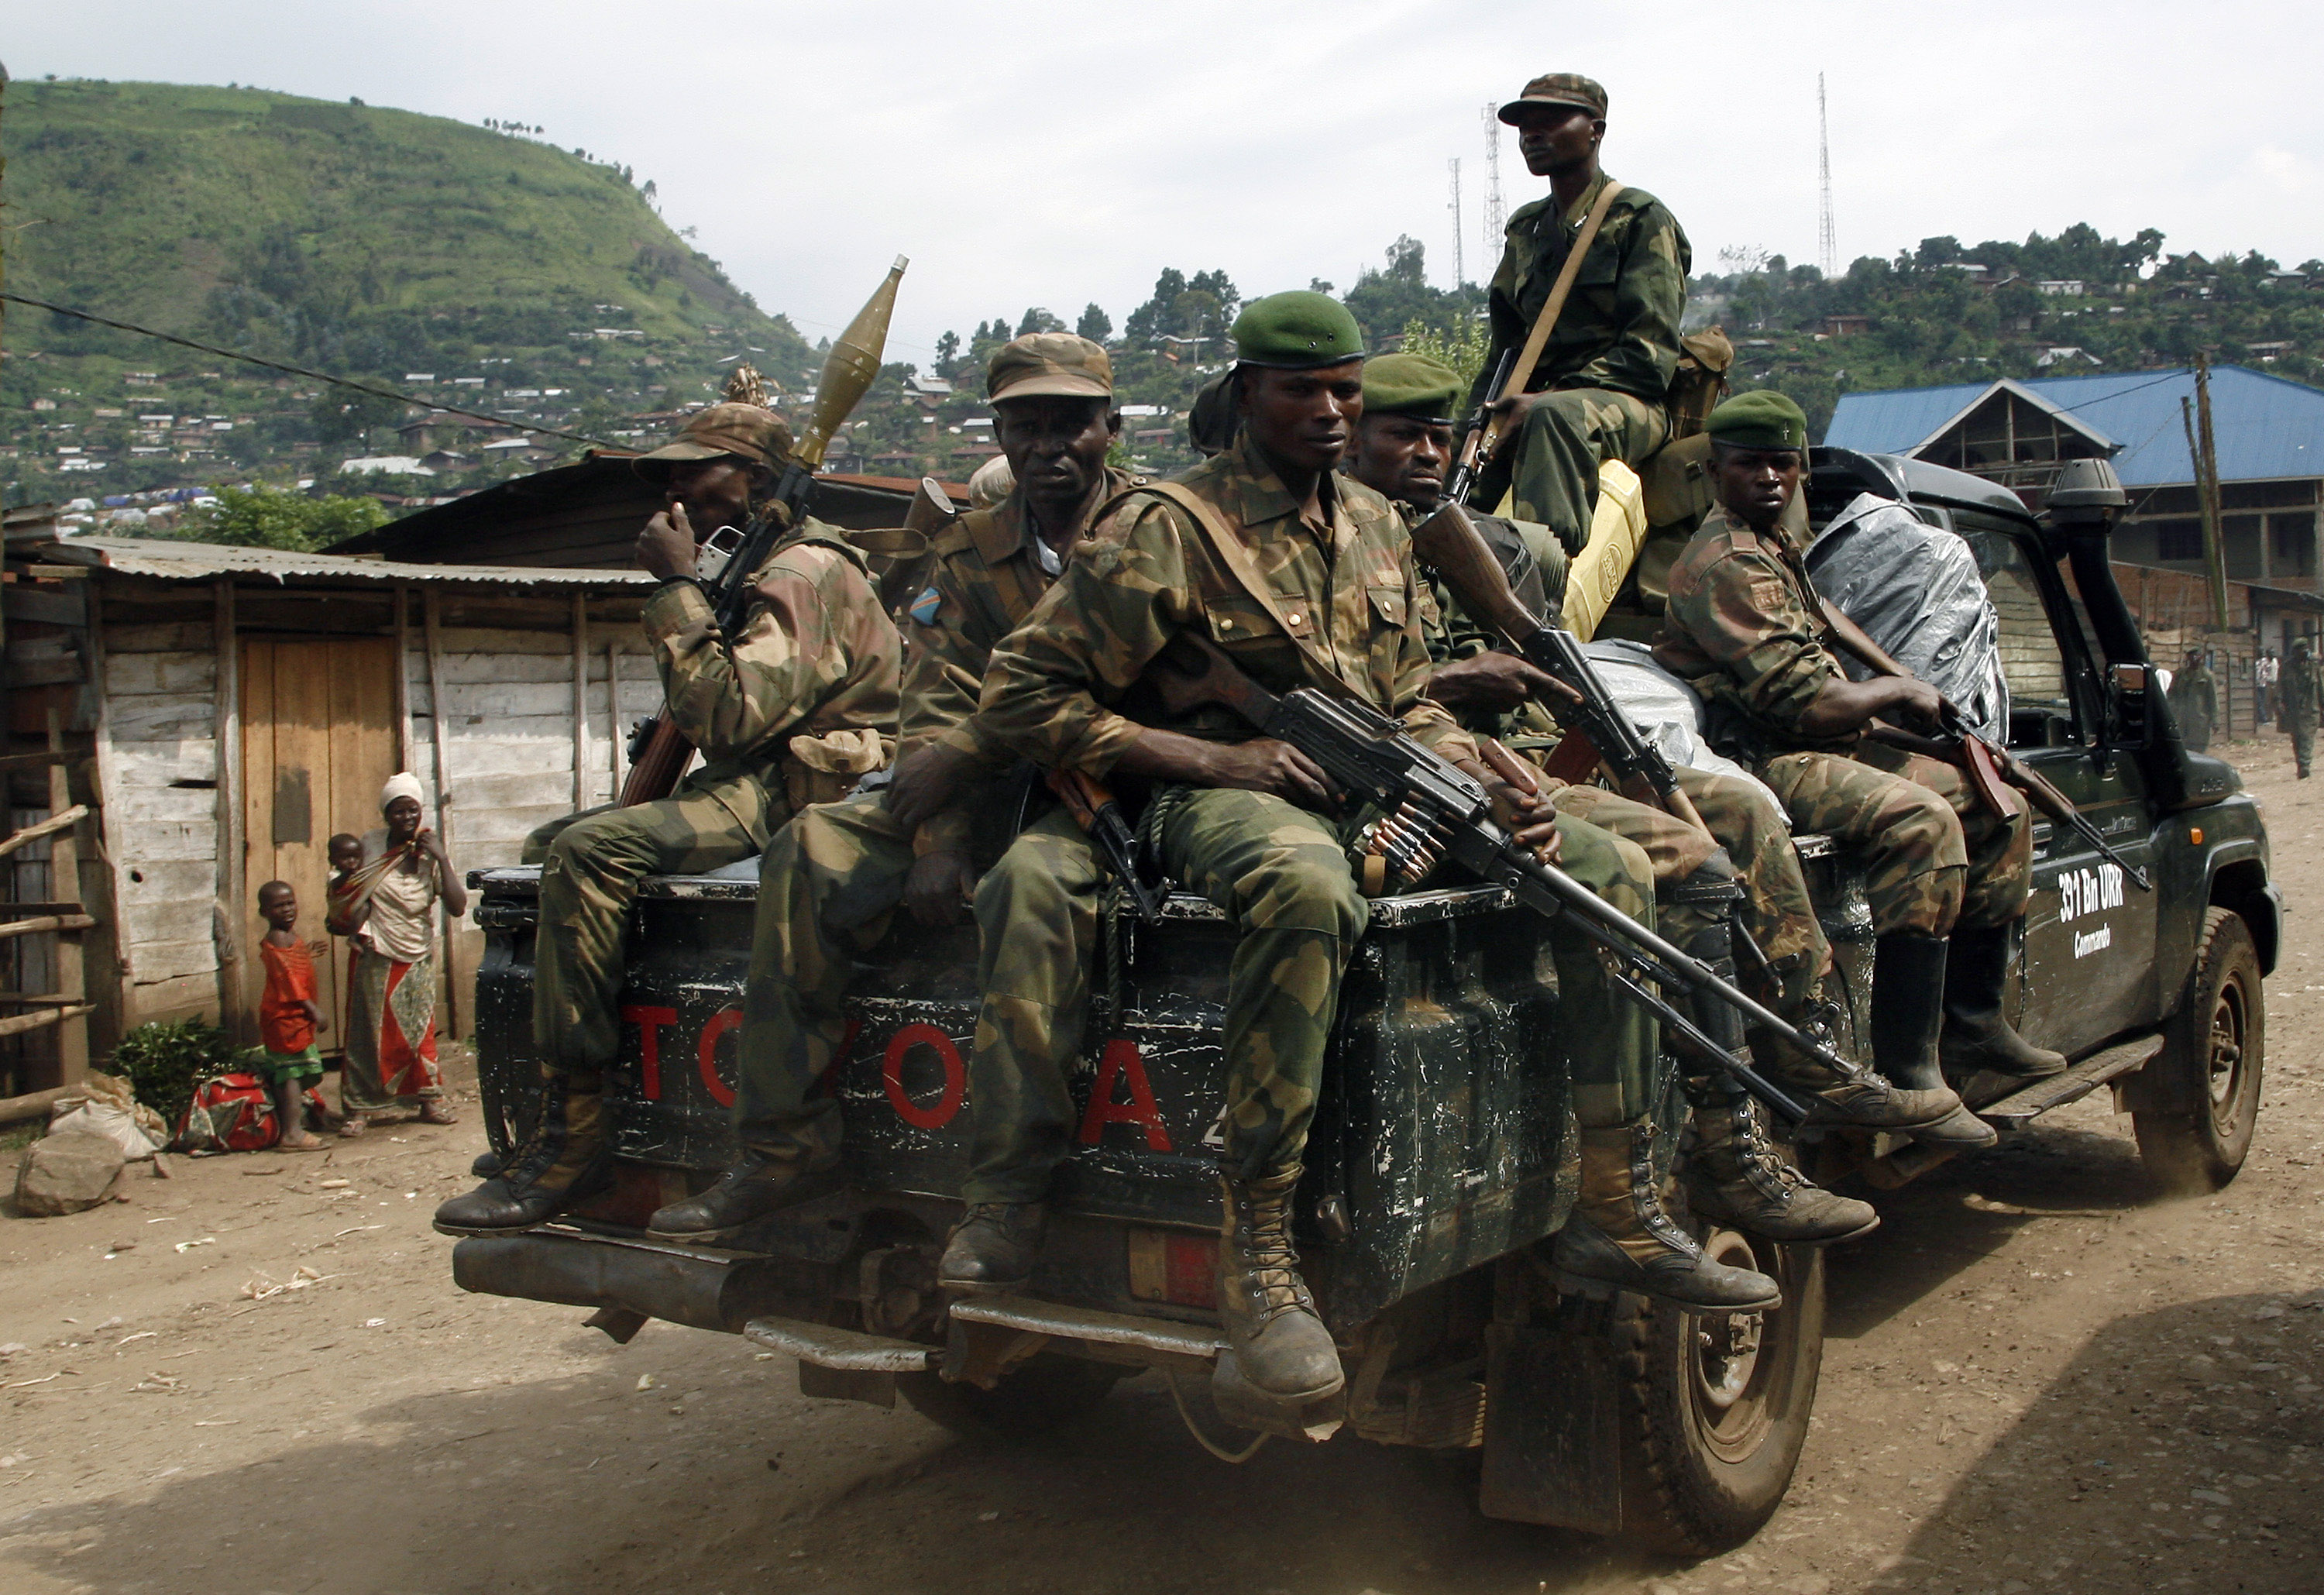 Stars and Stripes Op-ed: More U.S. can do to reform Congolese military